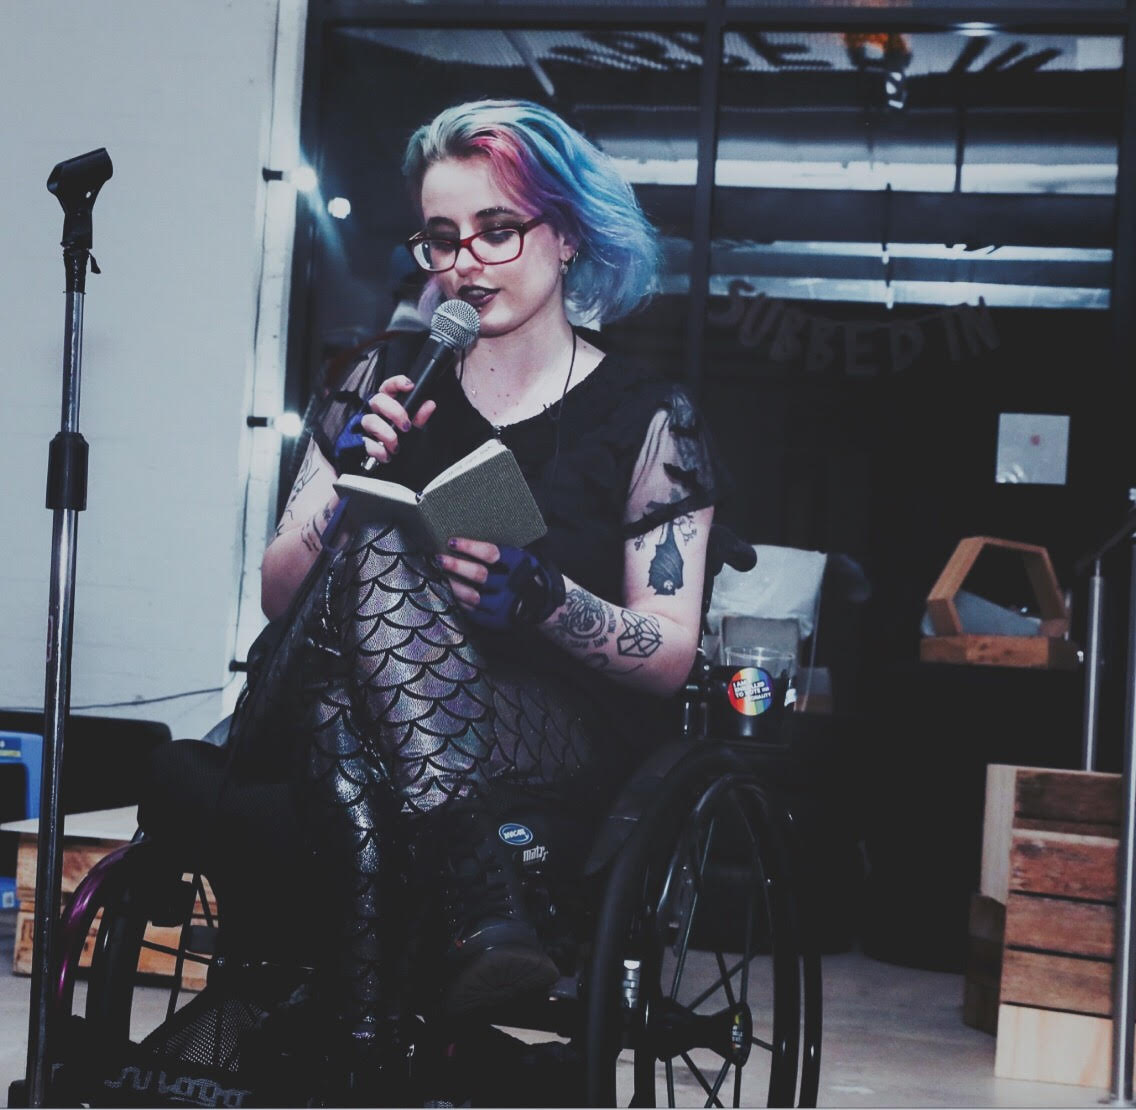 Image shows a white genderqueer wheelchair user with rainbow hair reading into a microphone.